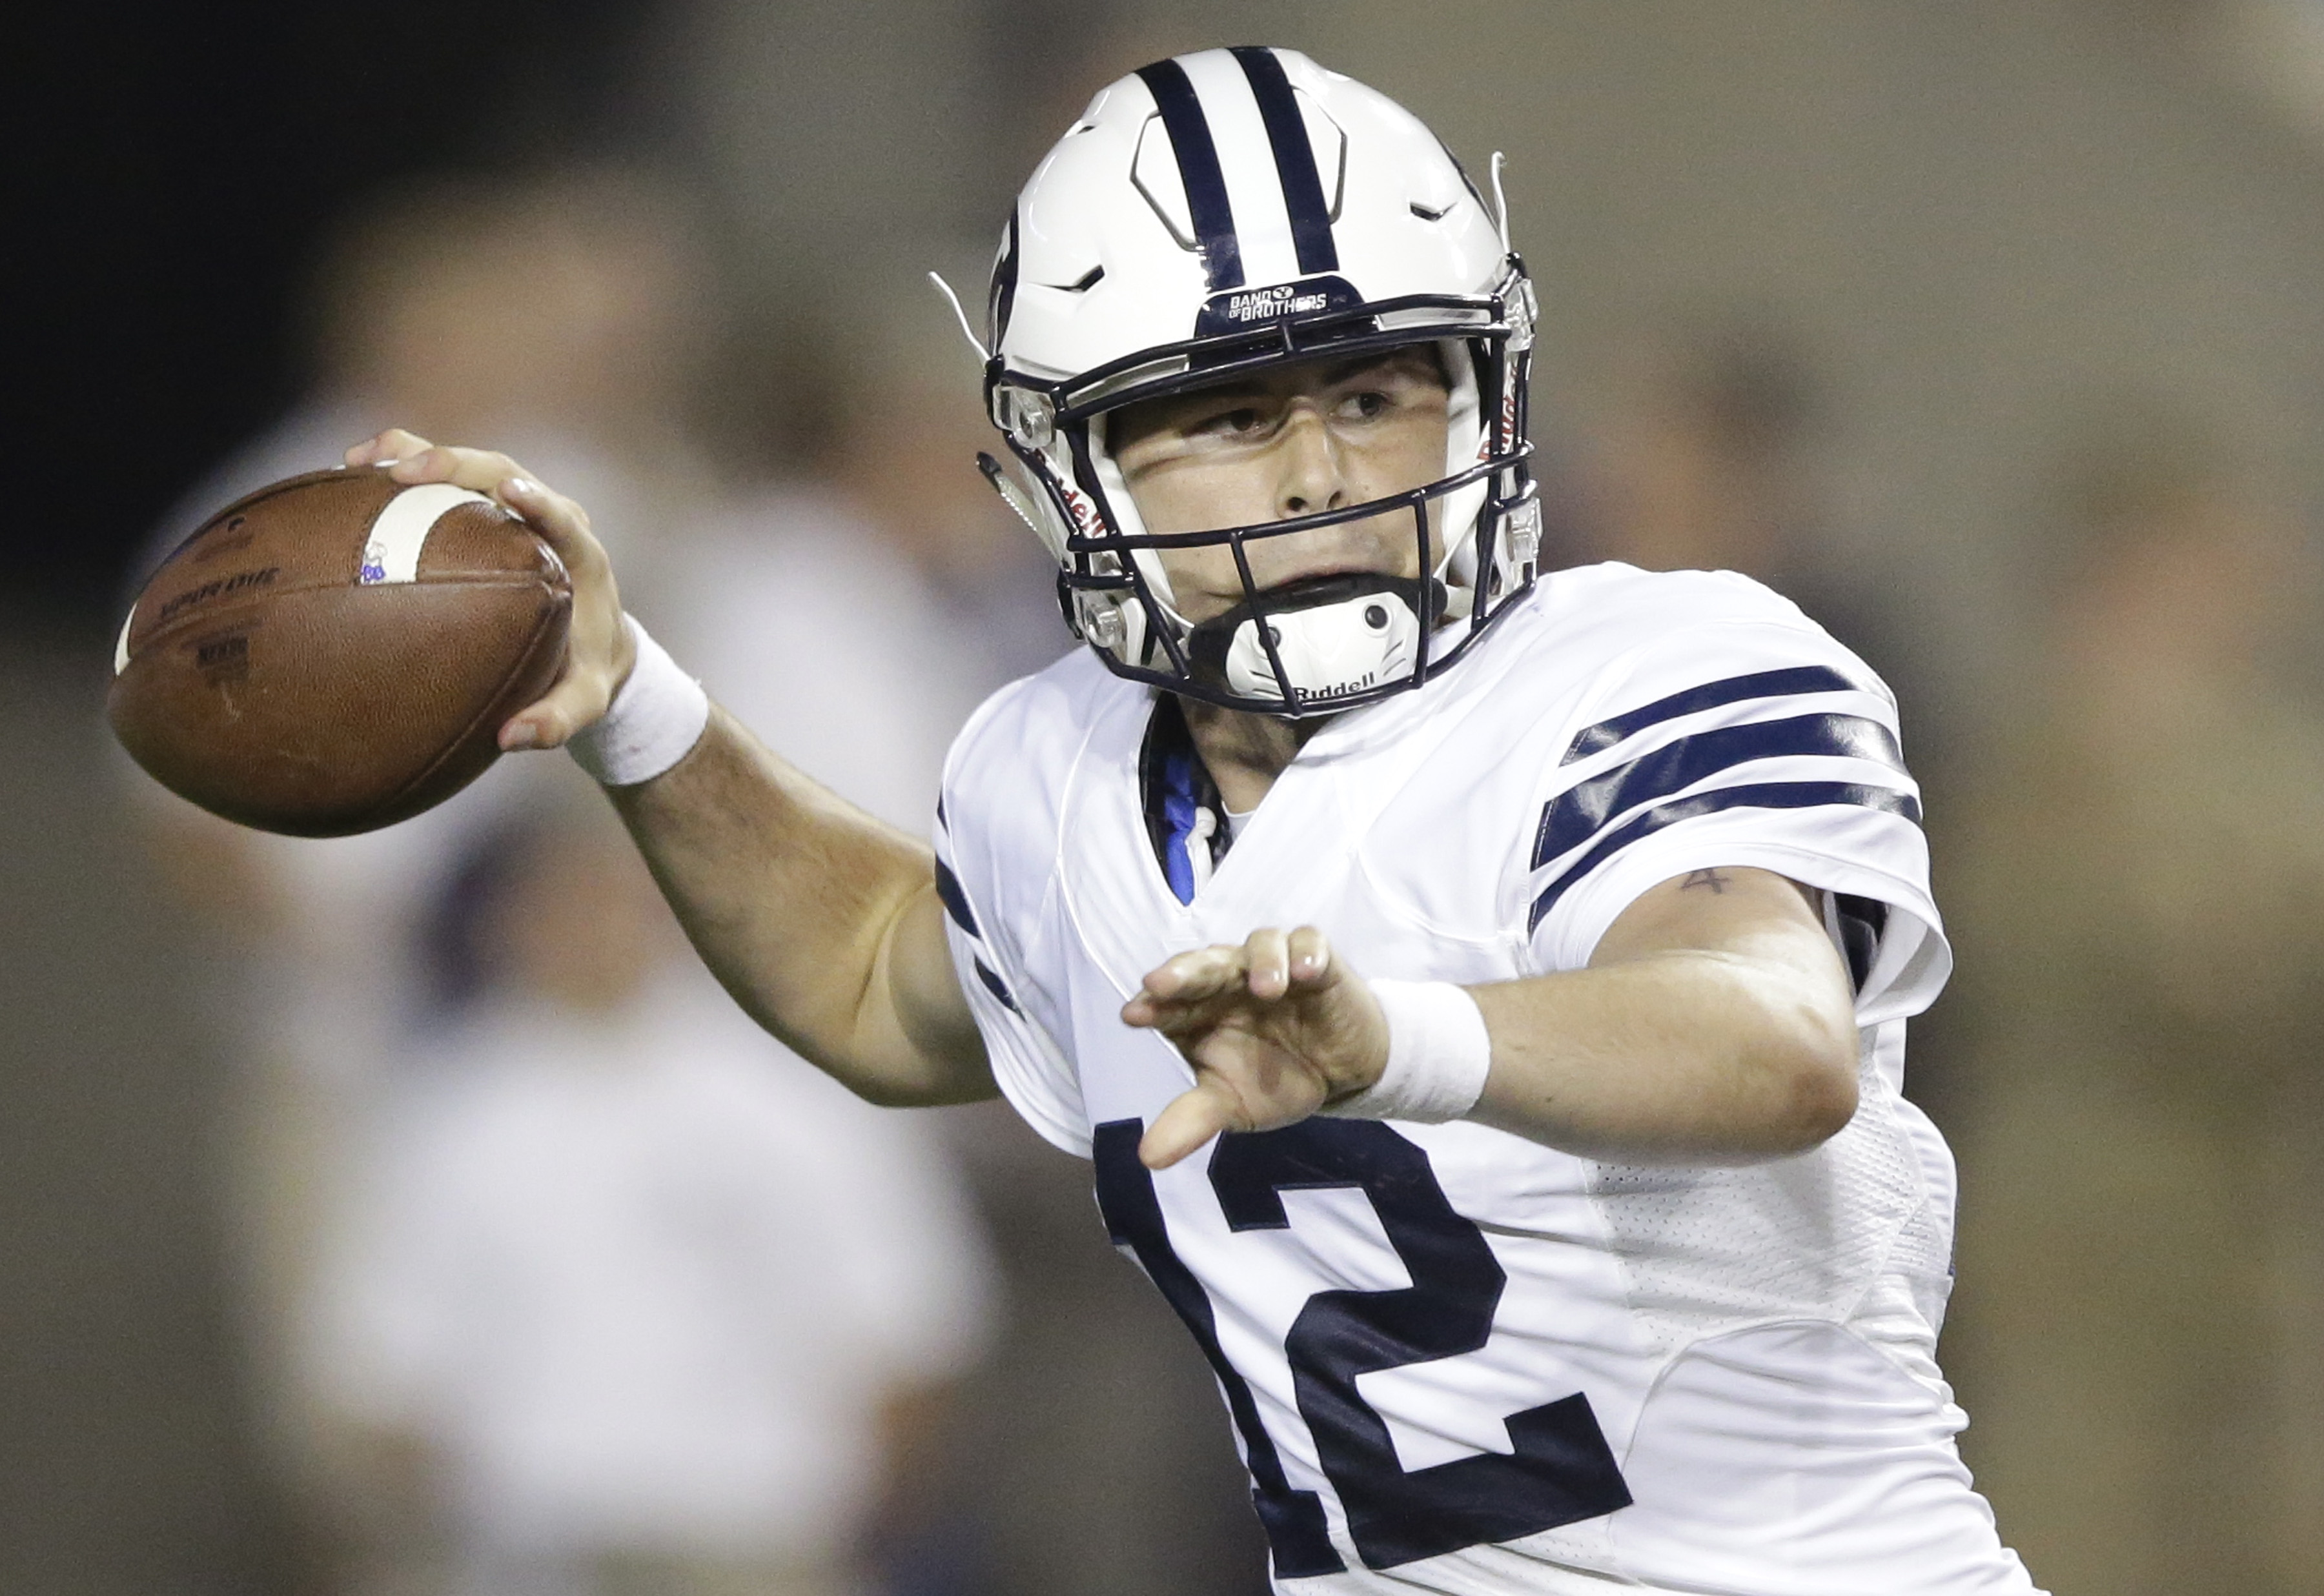 BYU quarterback Tanner Mangum passes during the first half of the victory against Boise State. The Cougars won 35-24. (Associated Press)